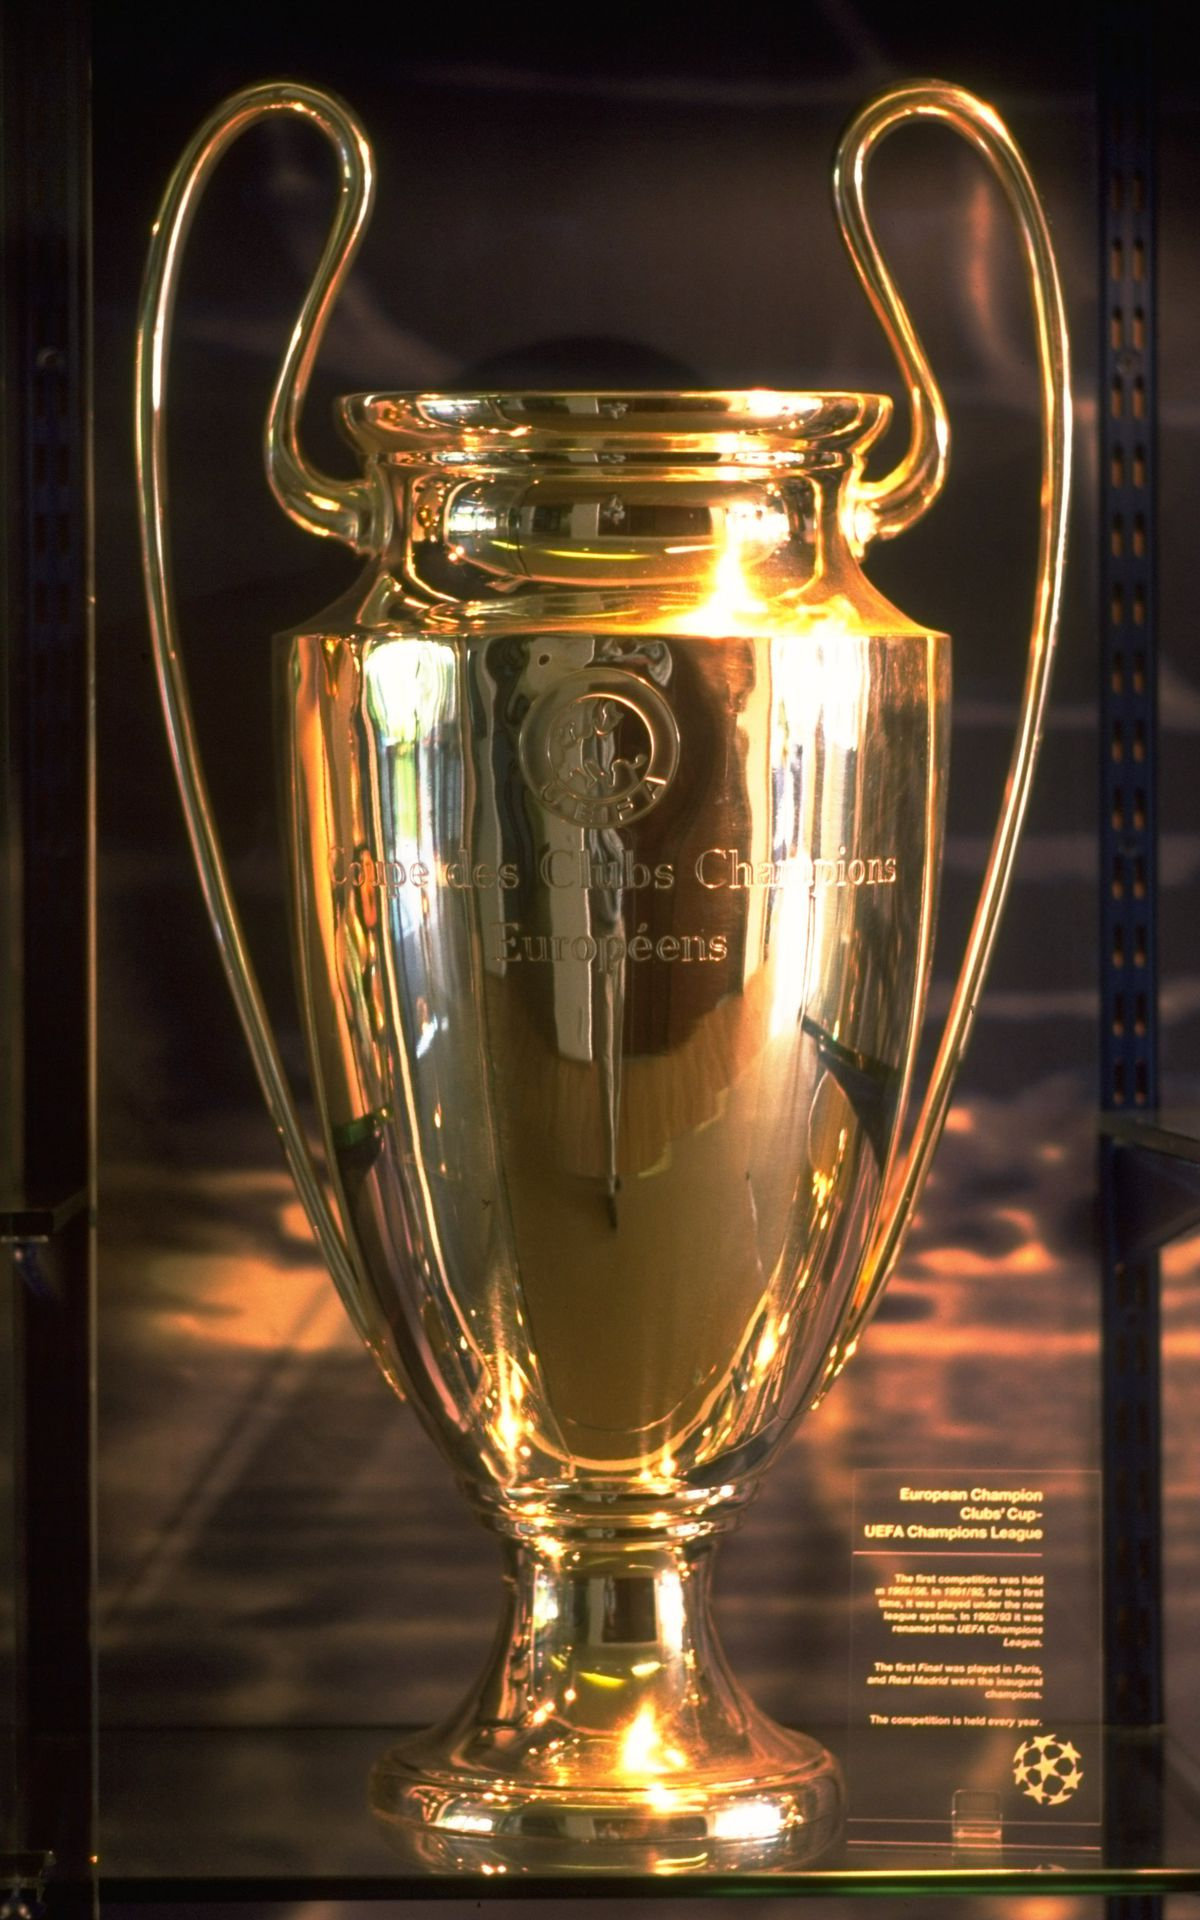 Portrait of the European Cup at UEFA Headquarters